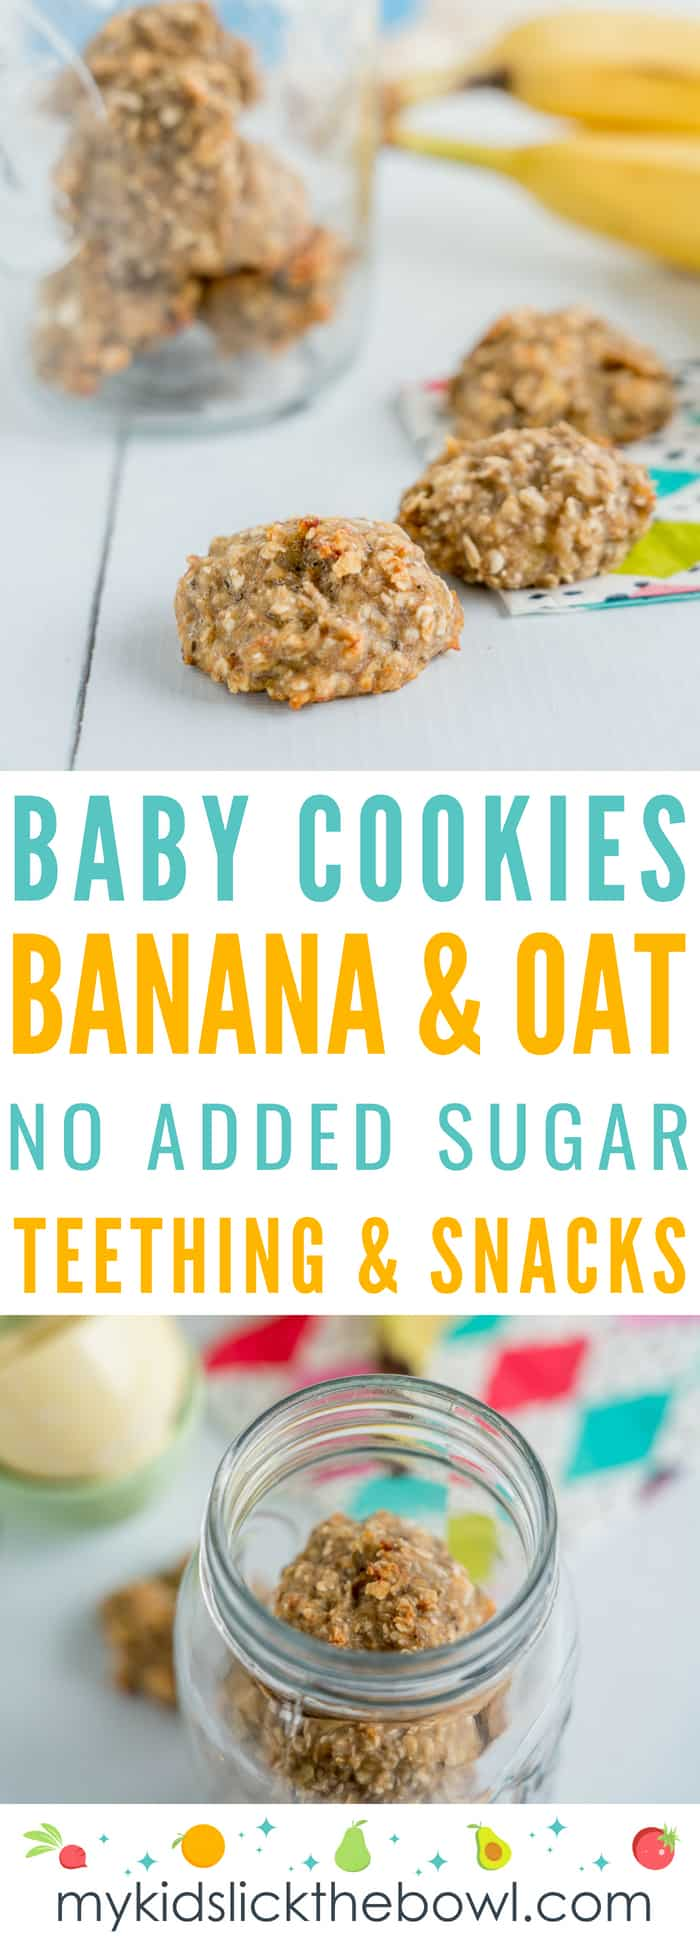 Basic Banana Oat Baby Cookies